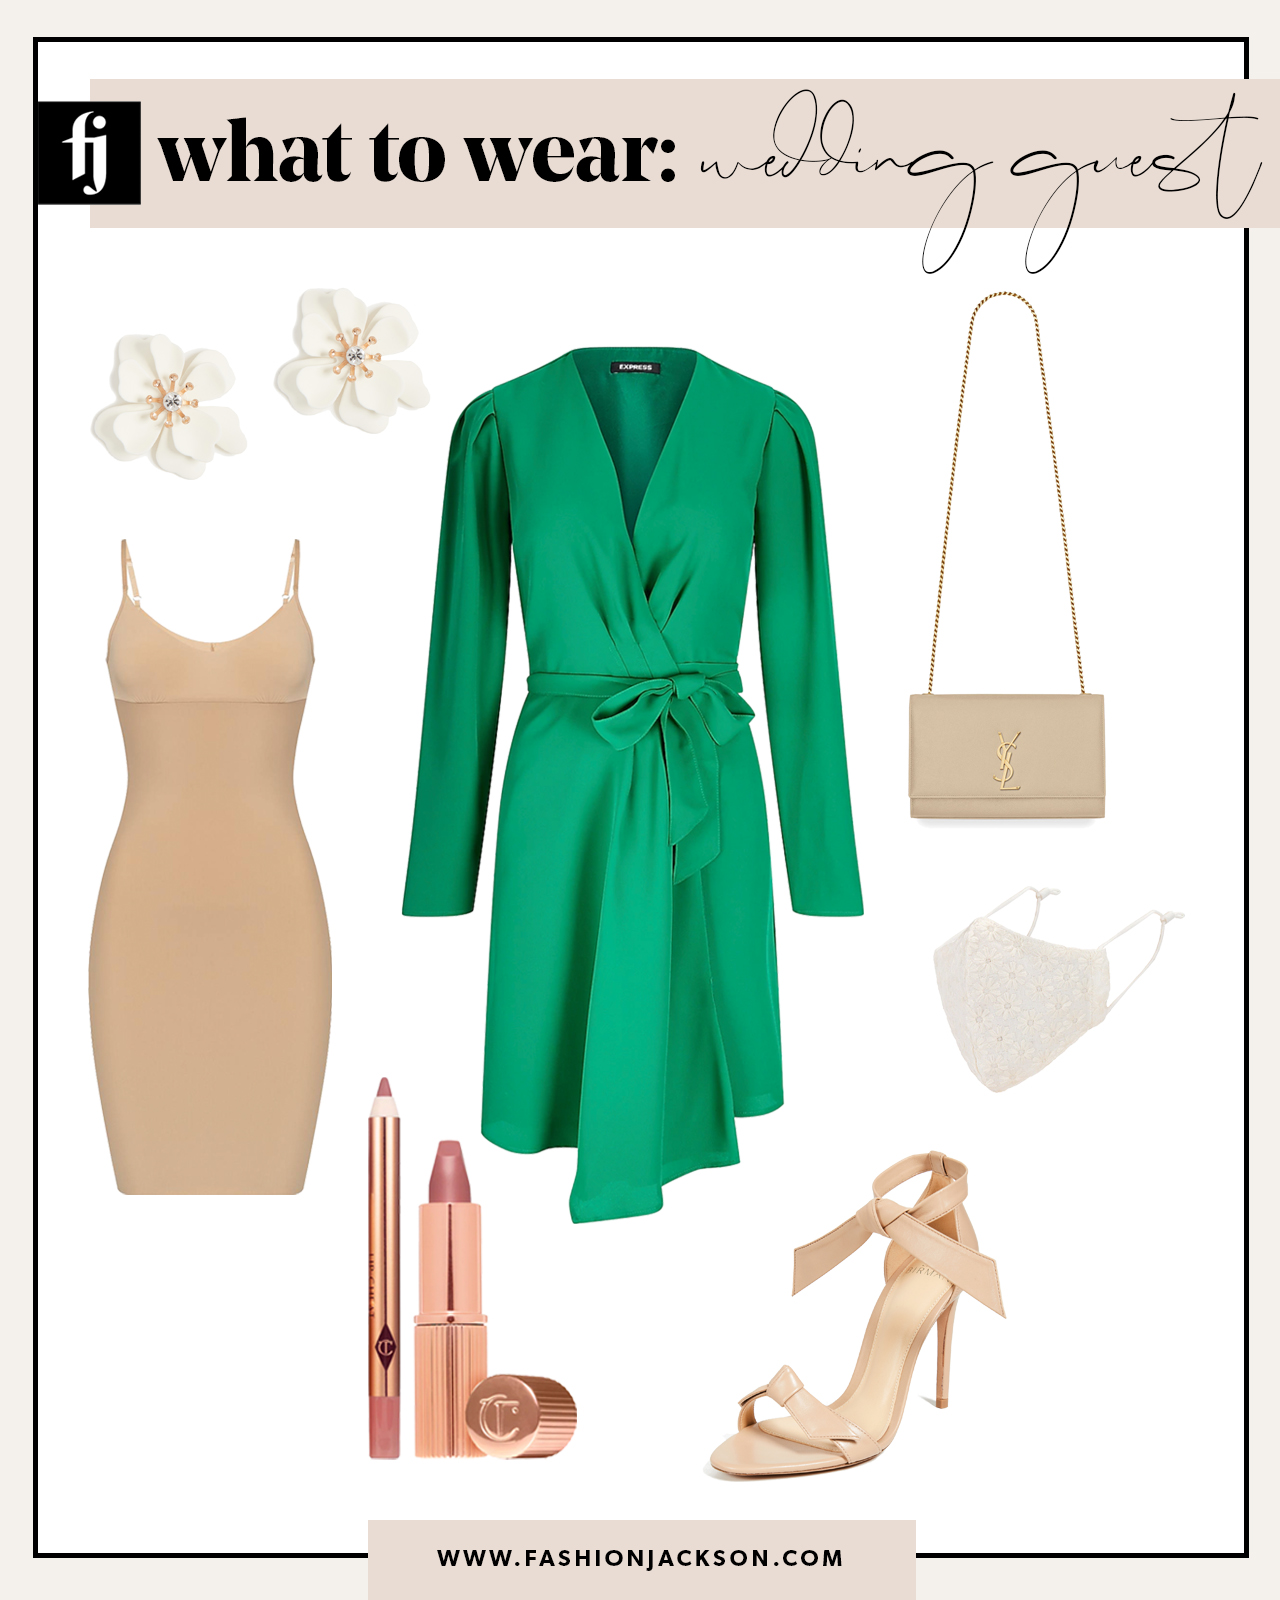 wedding guest outfit 9